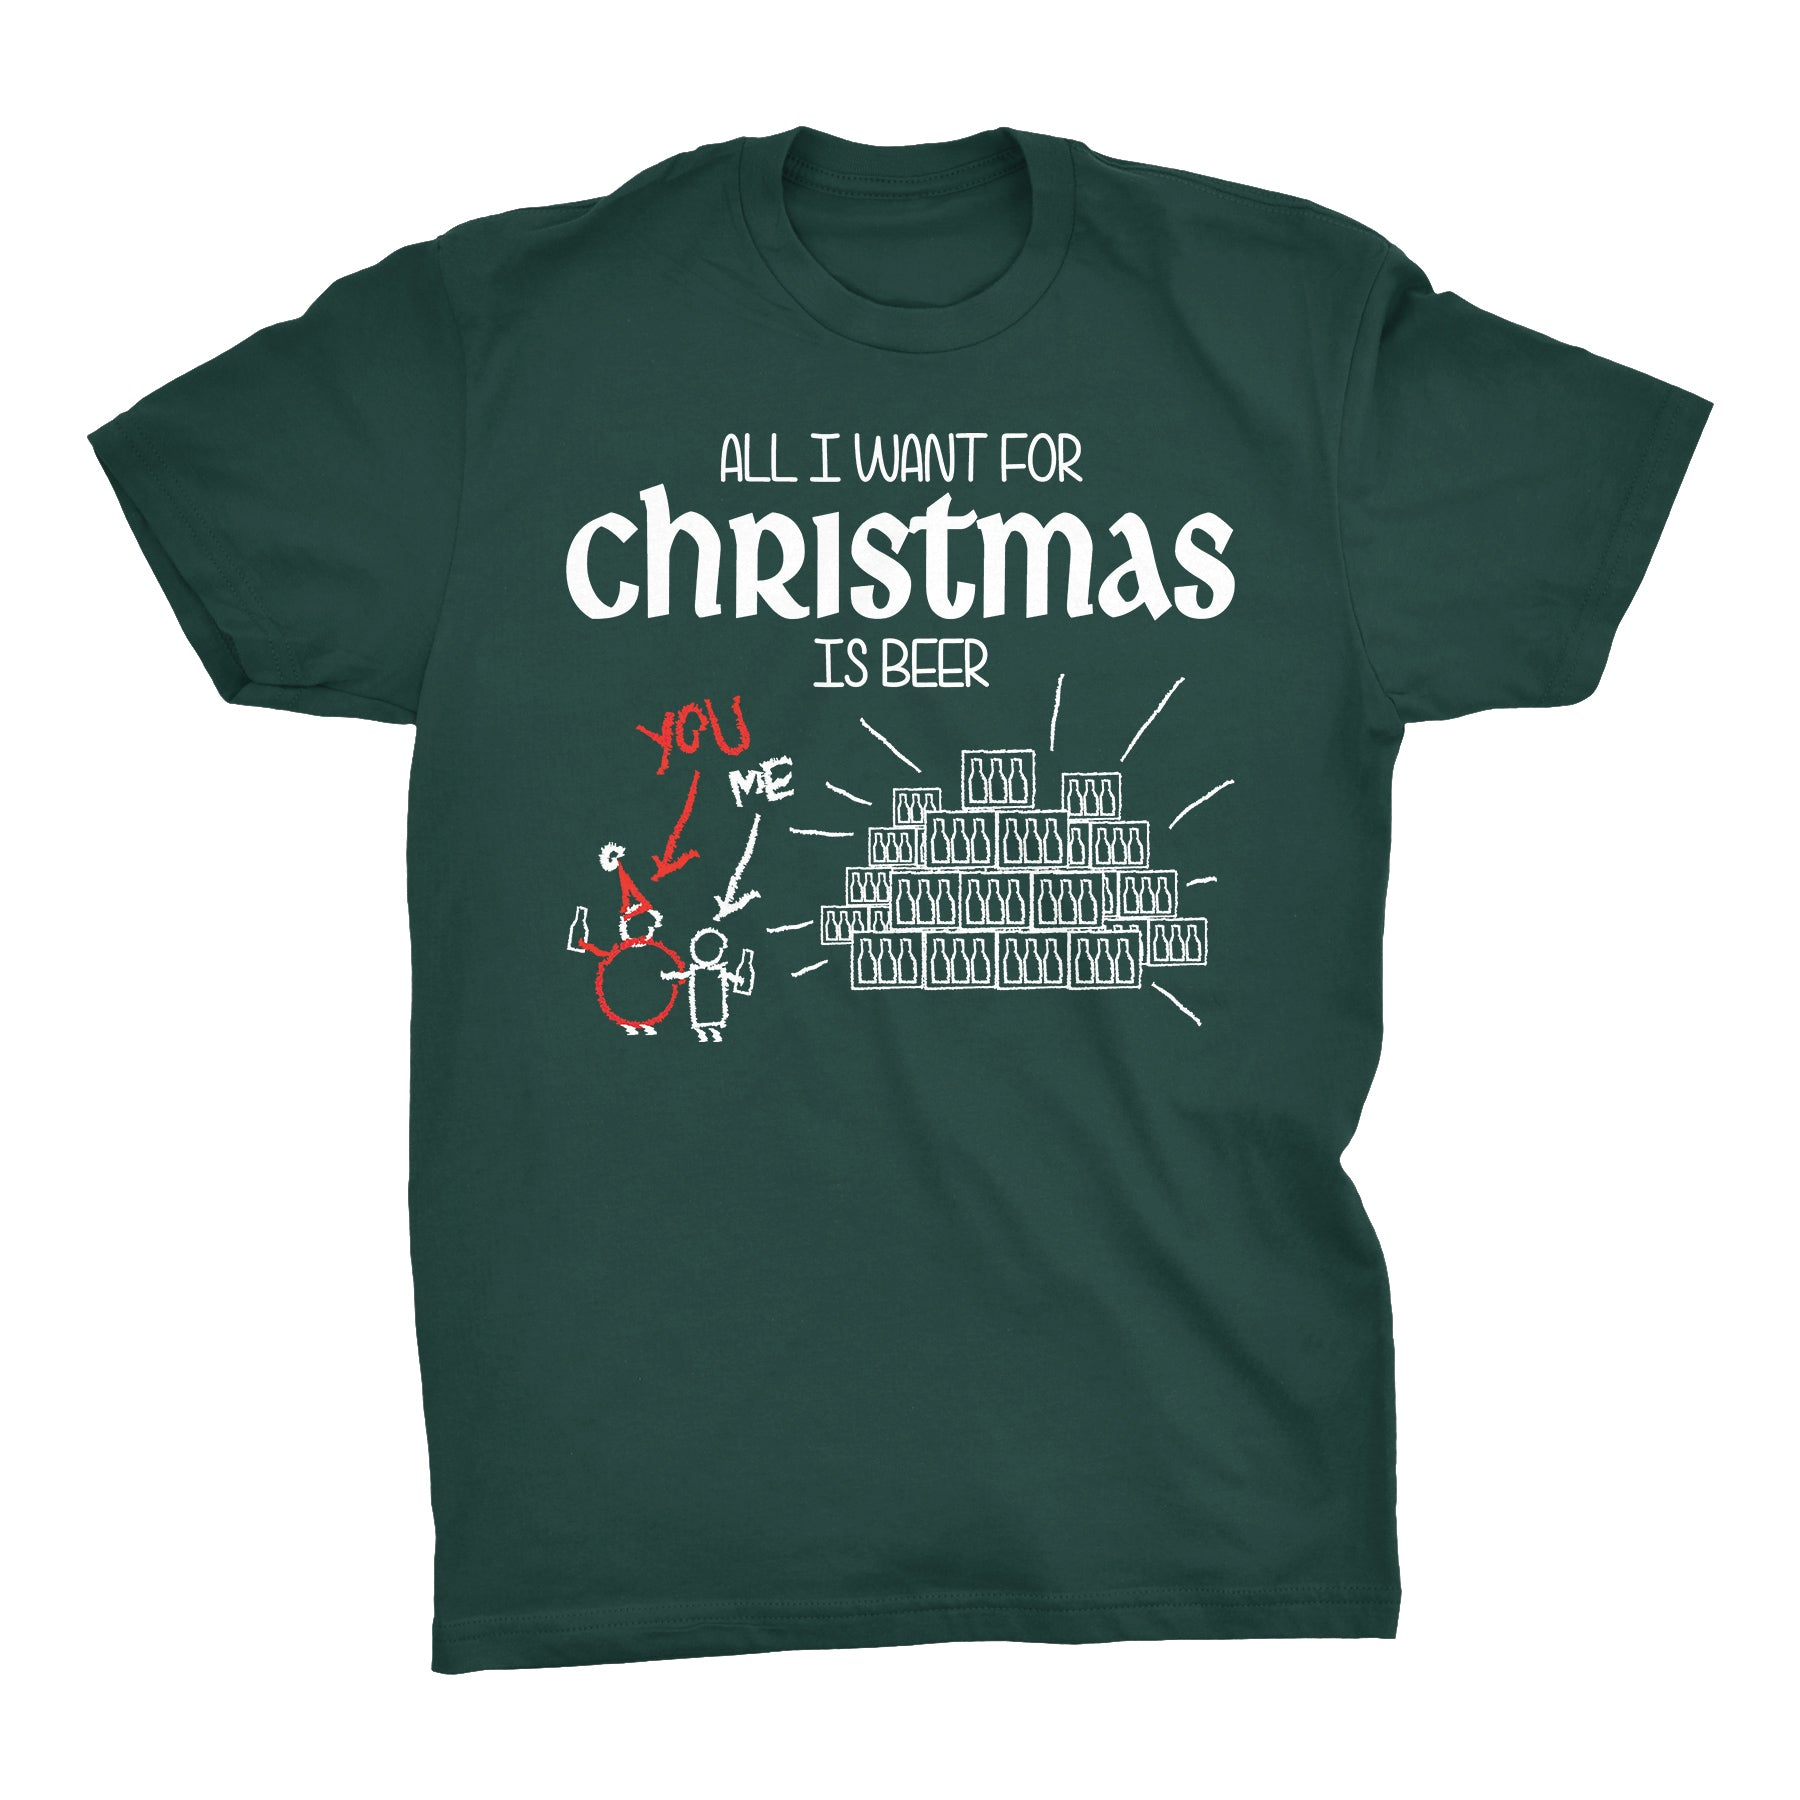 All I Want For Christmas Is BEER - Christmas T-shirt